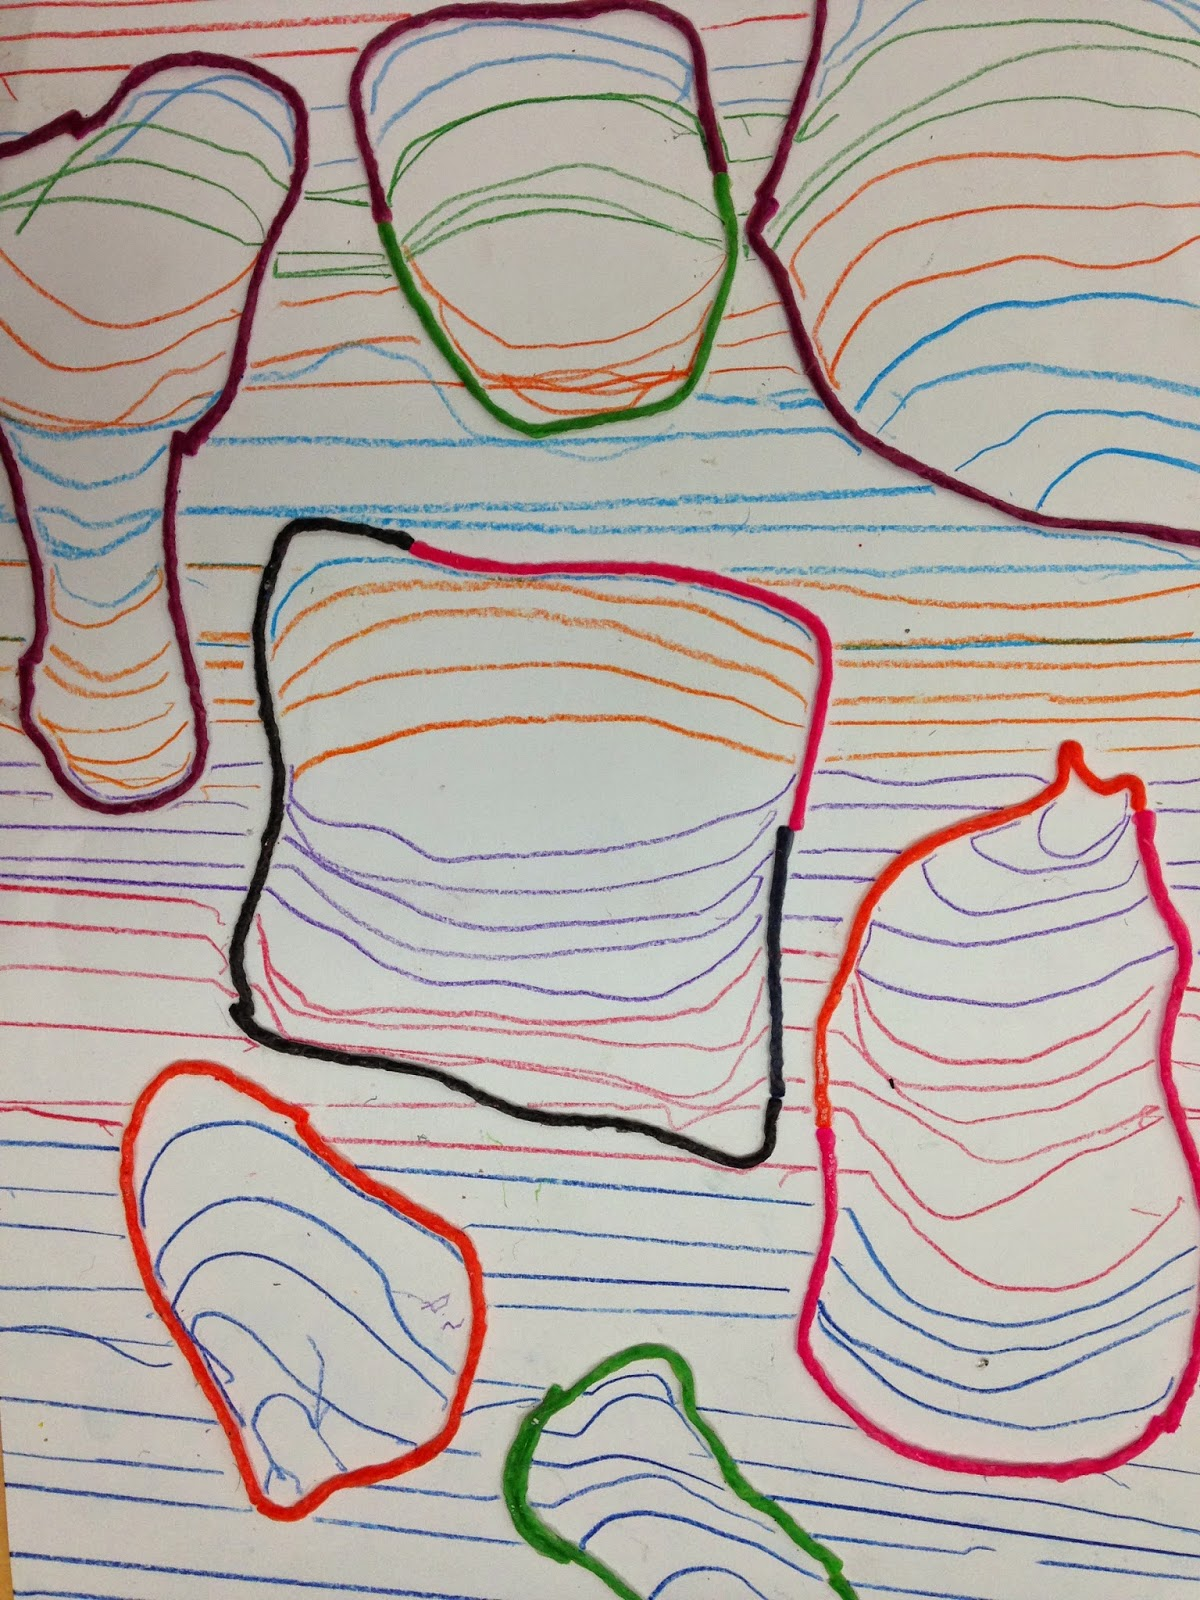 Made curves inside the shapes to create their cross contour drawings